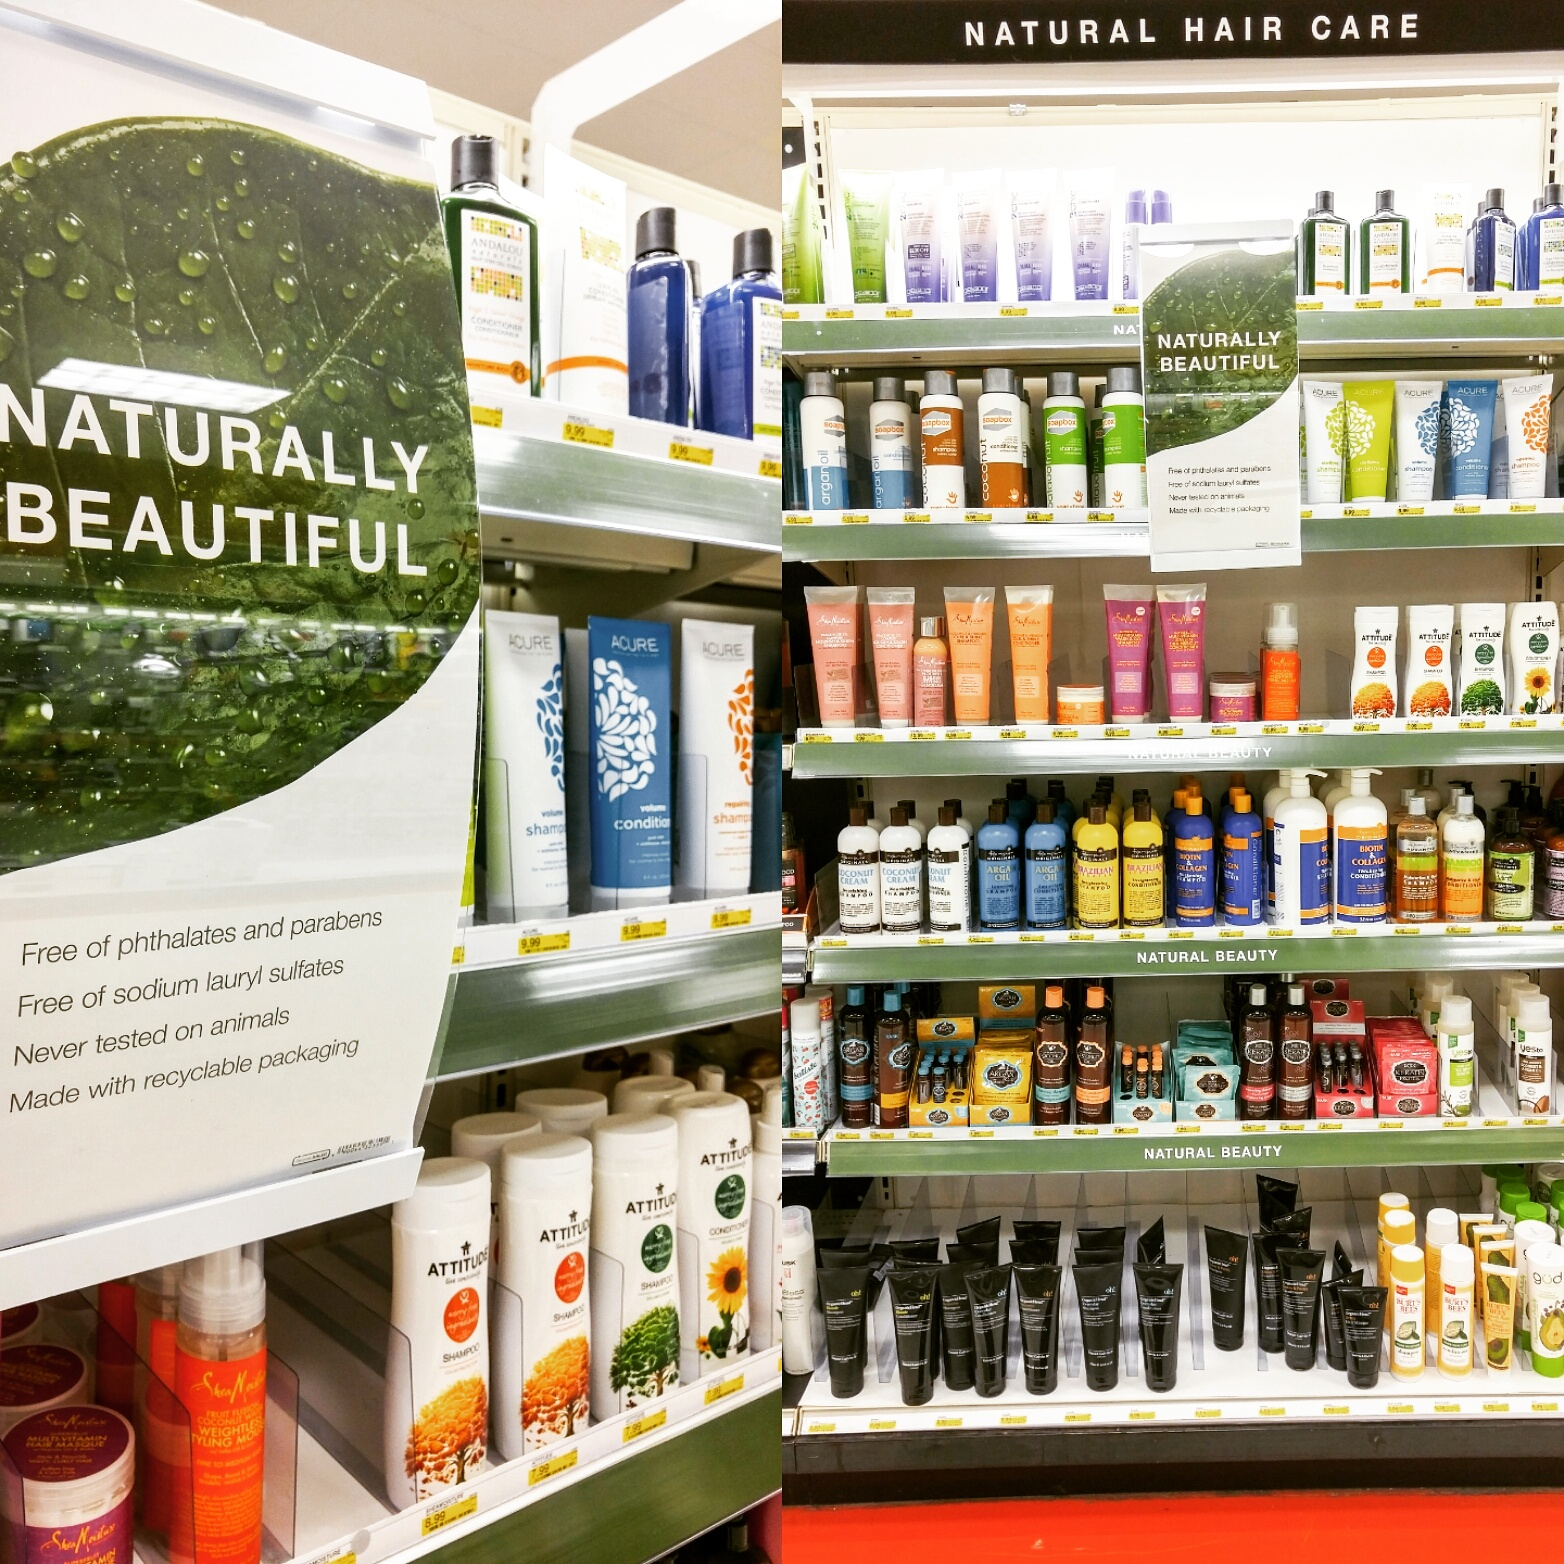 New at Target: Natural Haircare – Branco Beauty